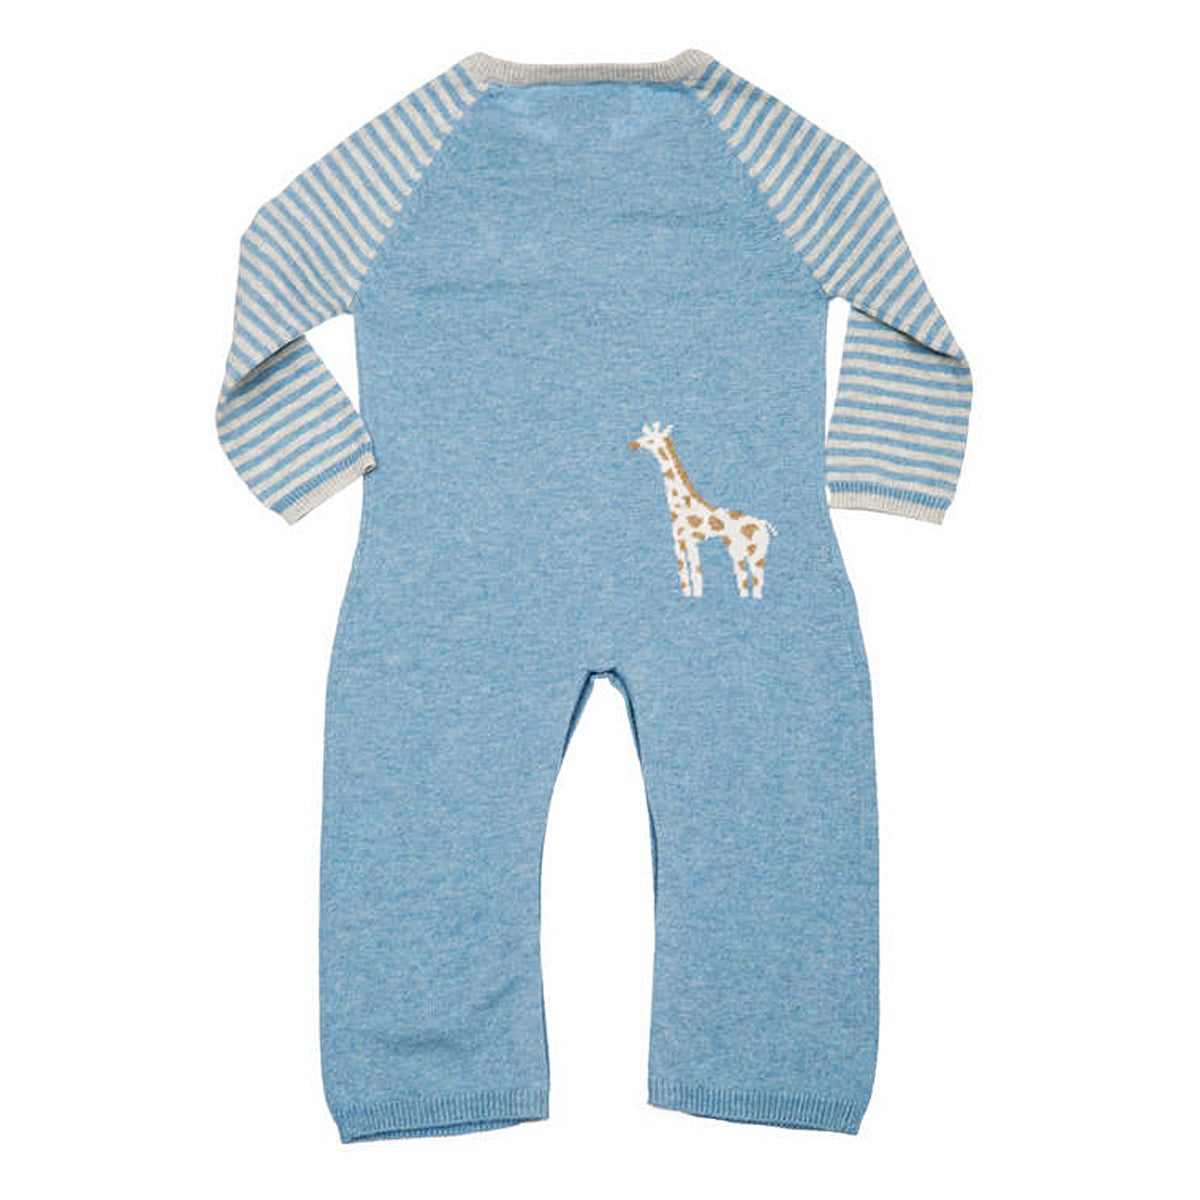 back detail of blue giraffe coverall with small giraffe detail